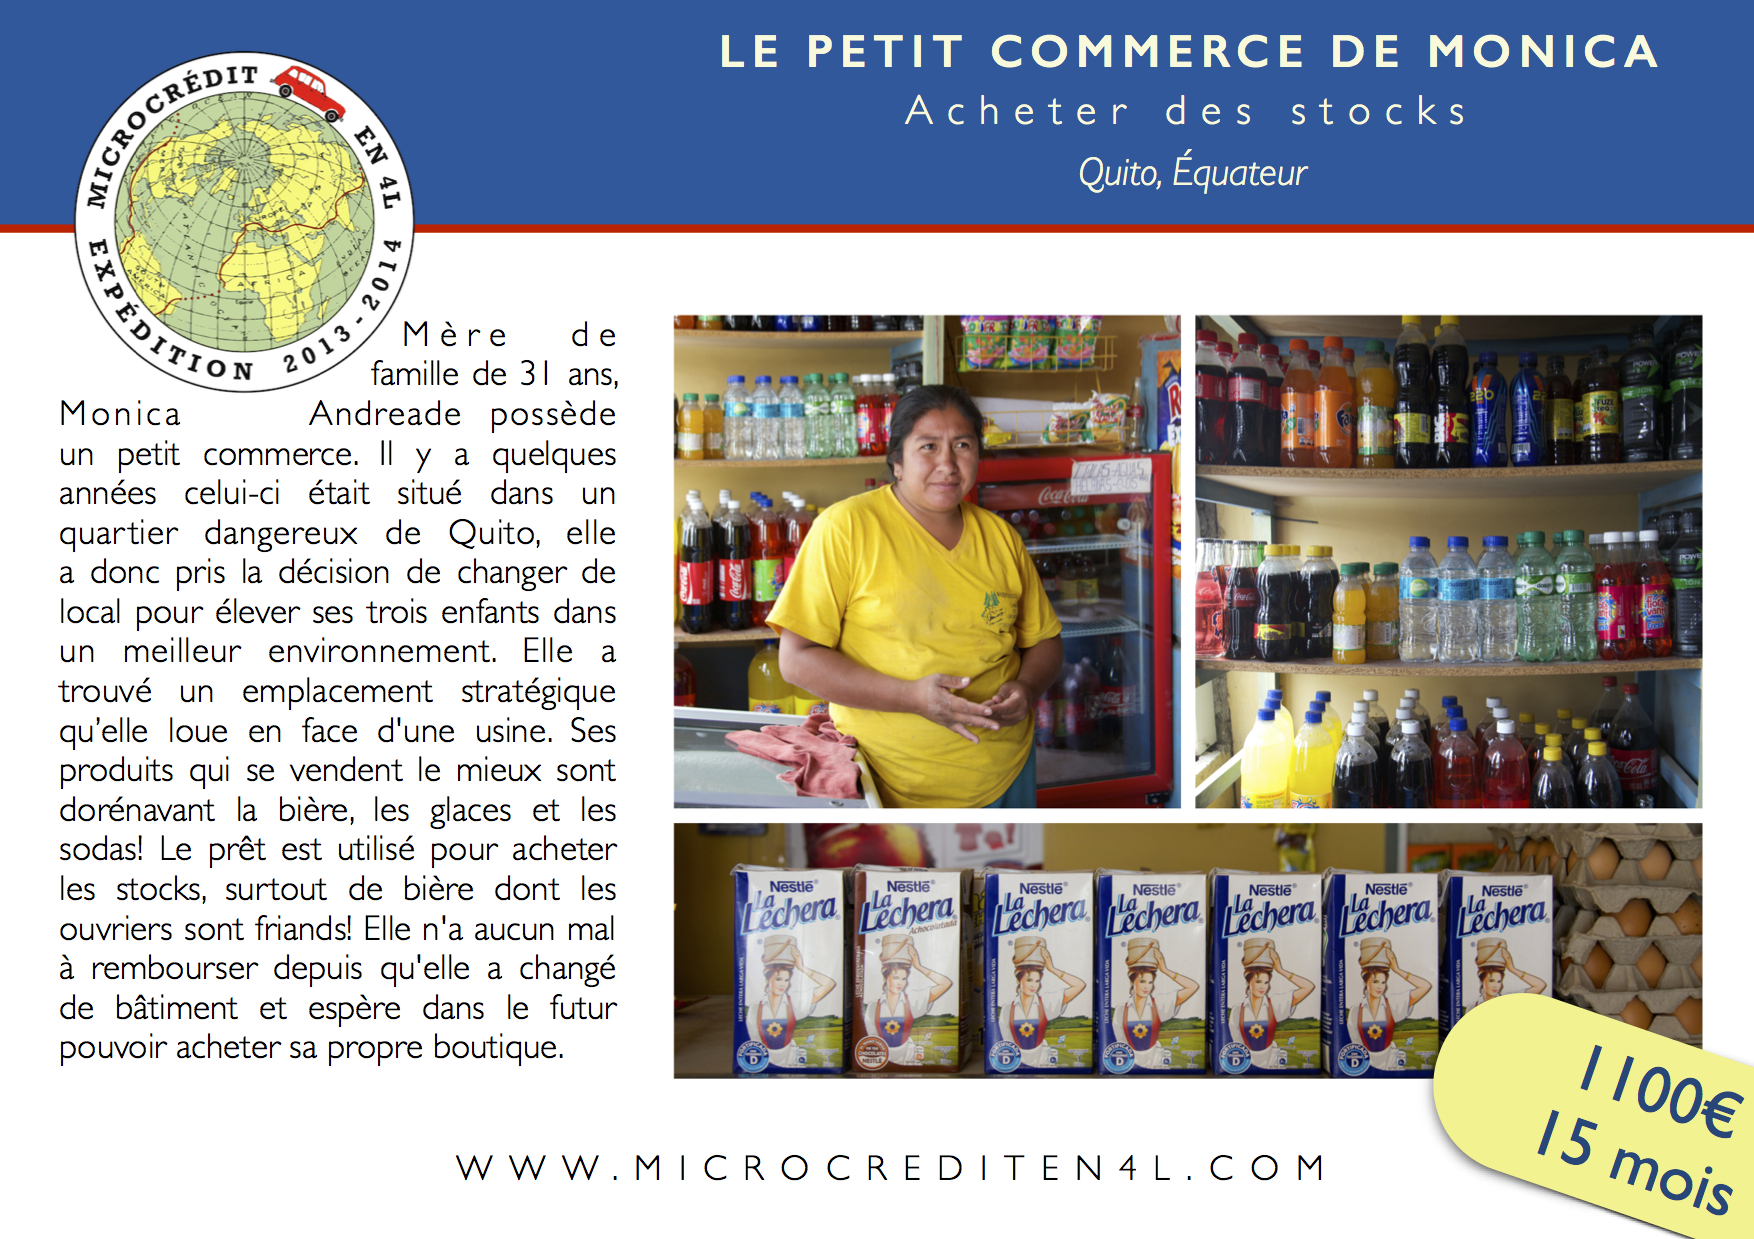 Le Petit Commerce de Monica